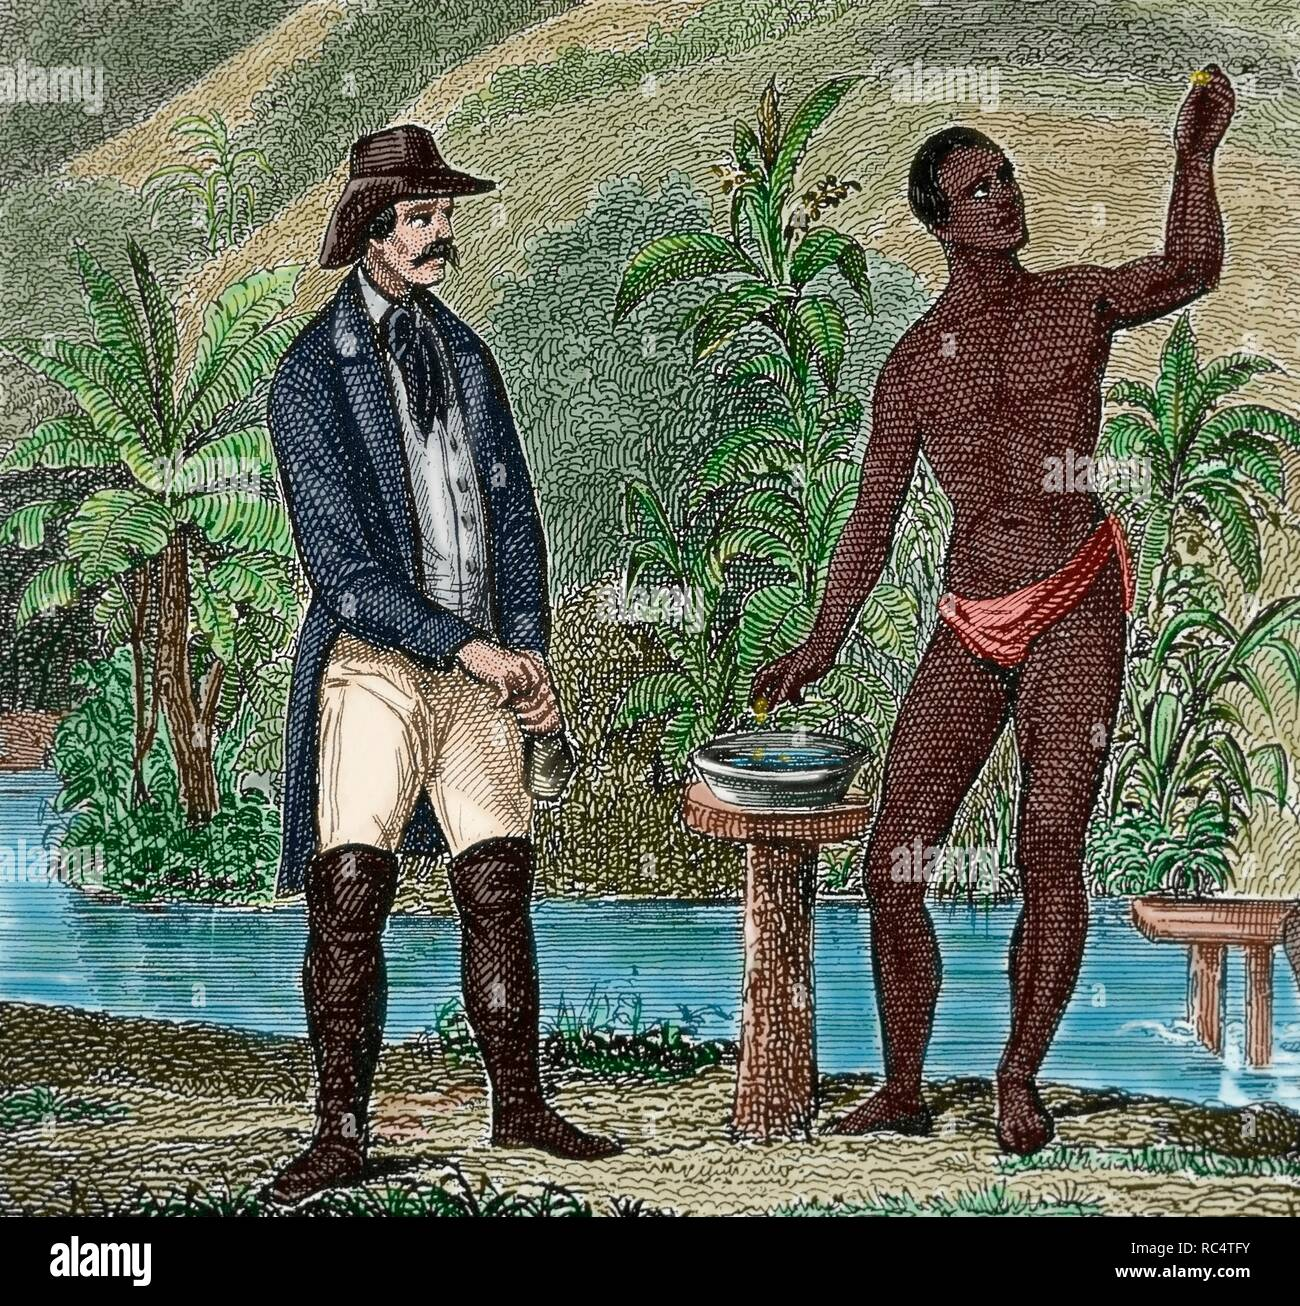 History of the Slavery  Foreman supervising the work of finding gold